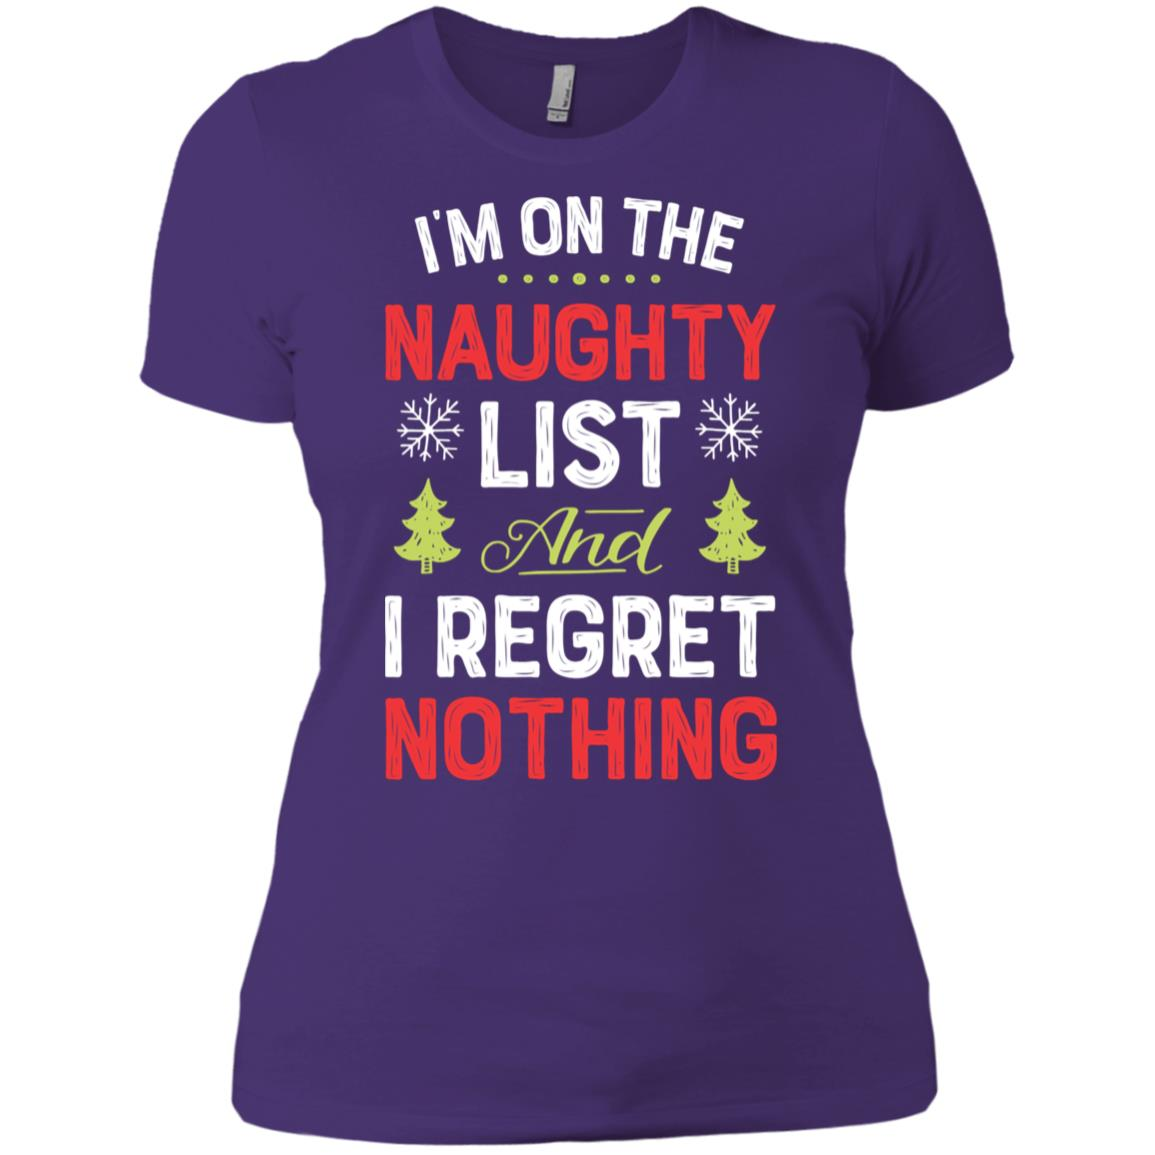 I'm on the Naughty List Christmas Funny Xmas Tee Women Short Sleeve